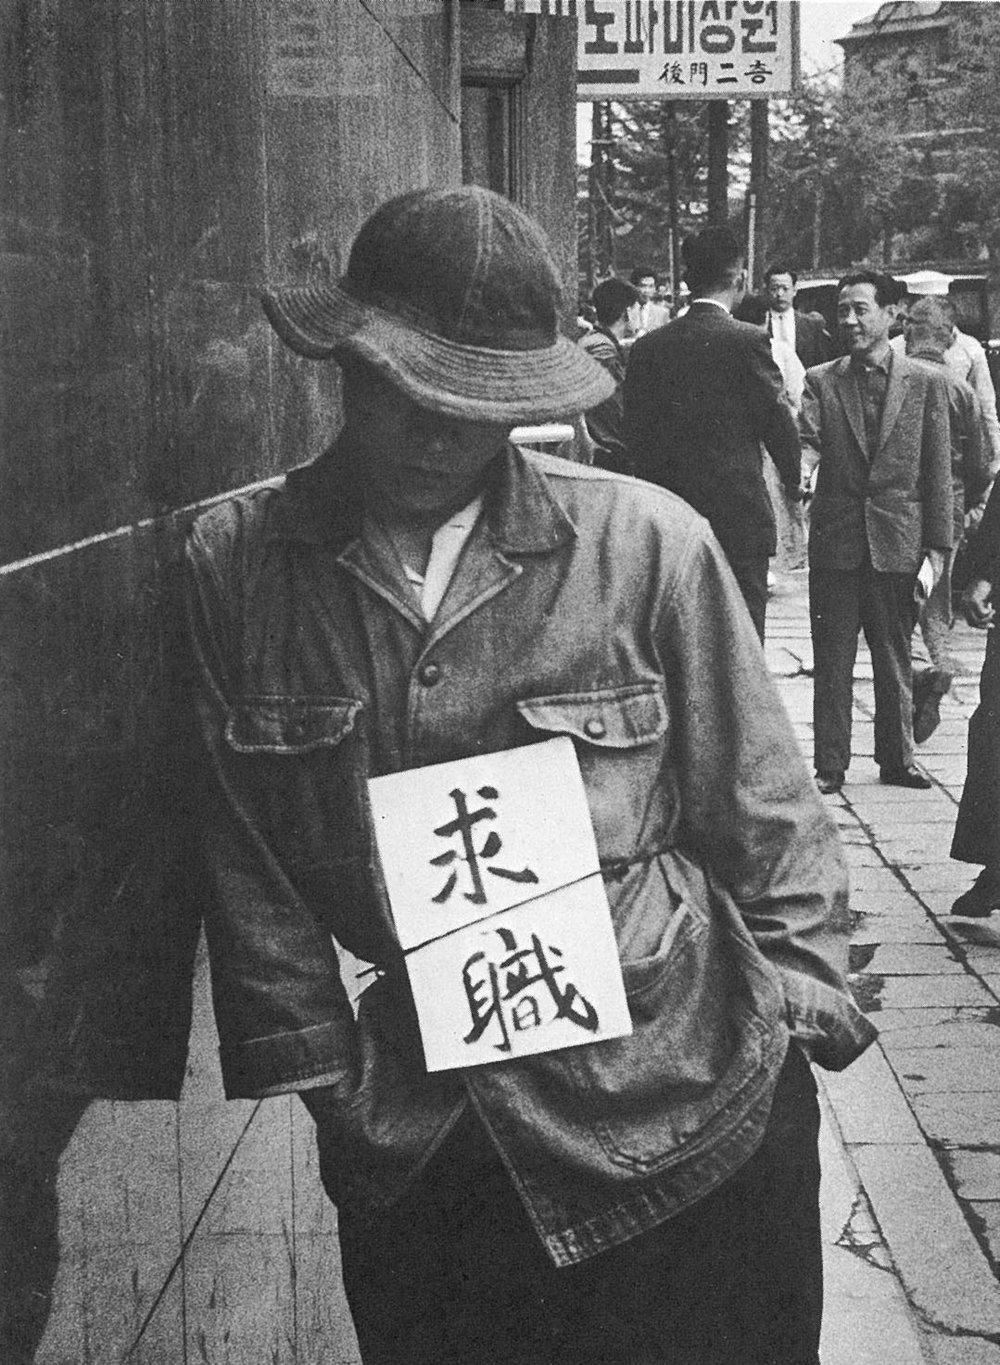 Limb Eung-sik,  Job hunting , 1953. Courtesy of The Museum of Photography, Seoul